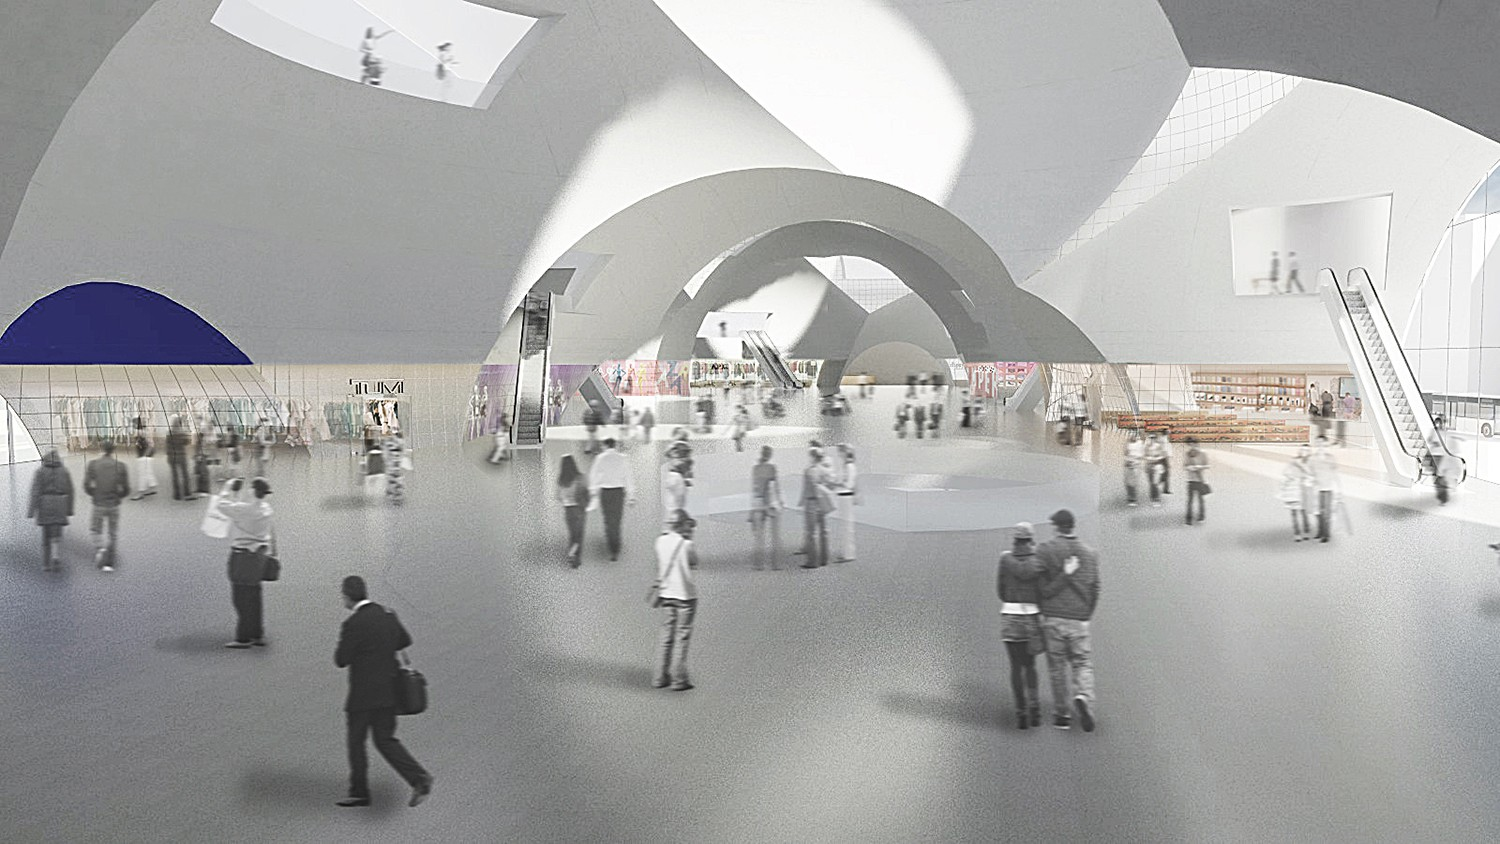 https://stevenholl.sfo2.digitaloceanspaces.com/uploads/projects/project-images/StevenHollArchitects_GareDuNord_07_WH.jpg